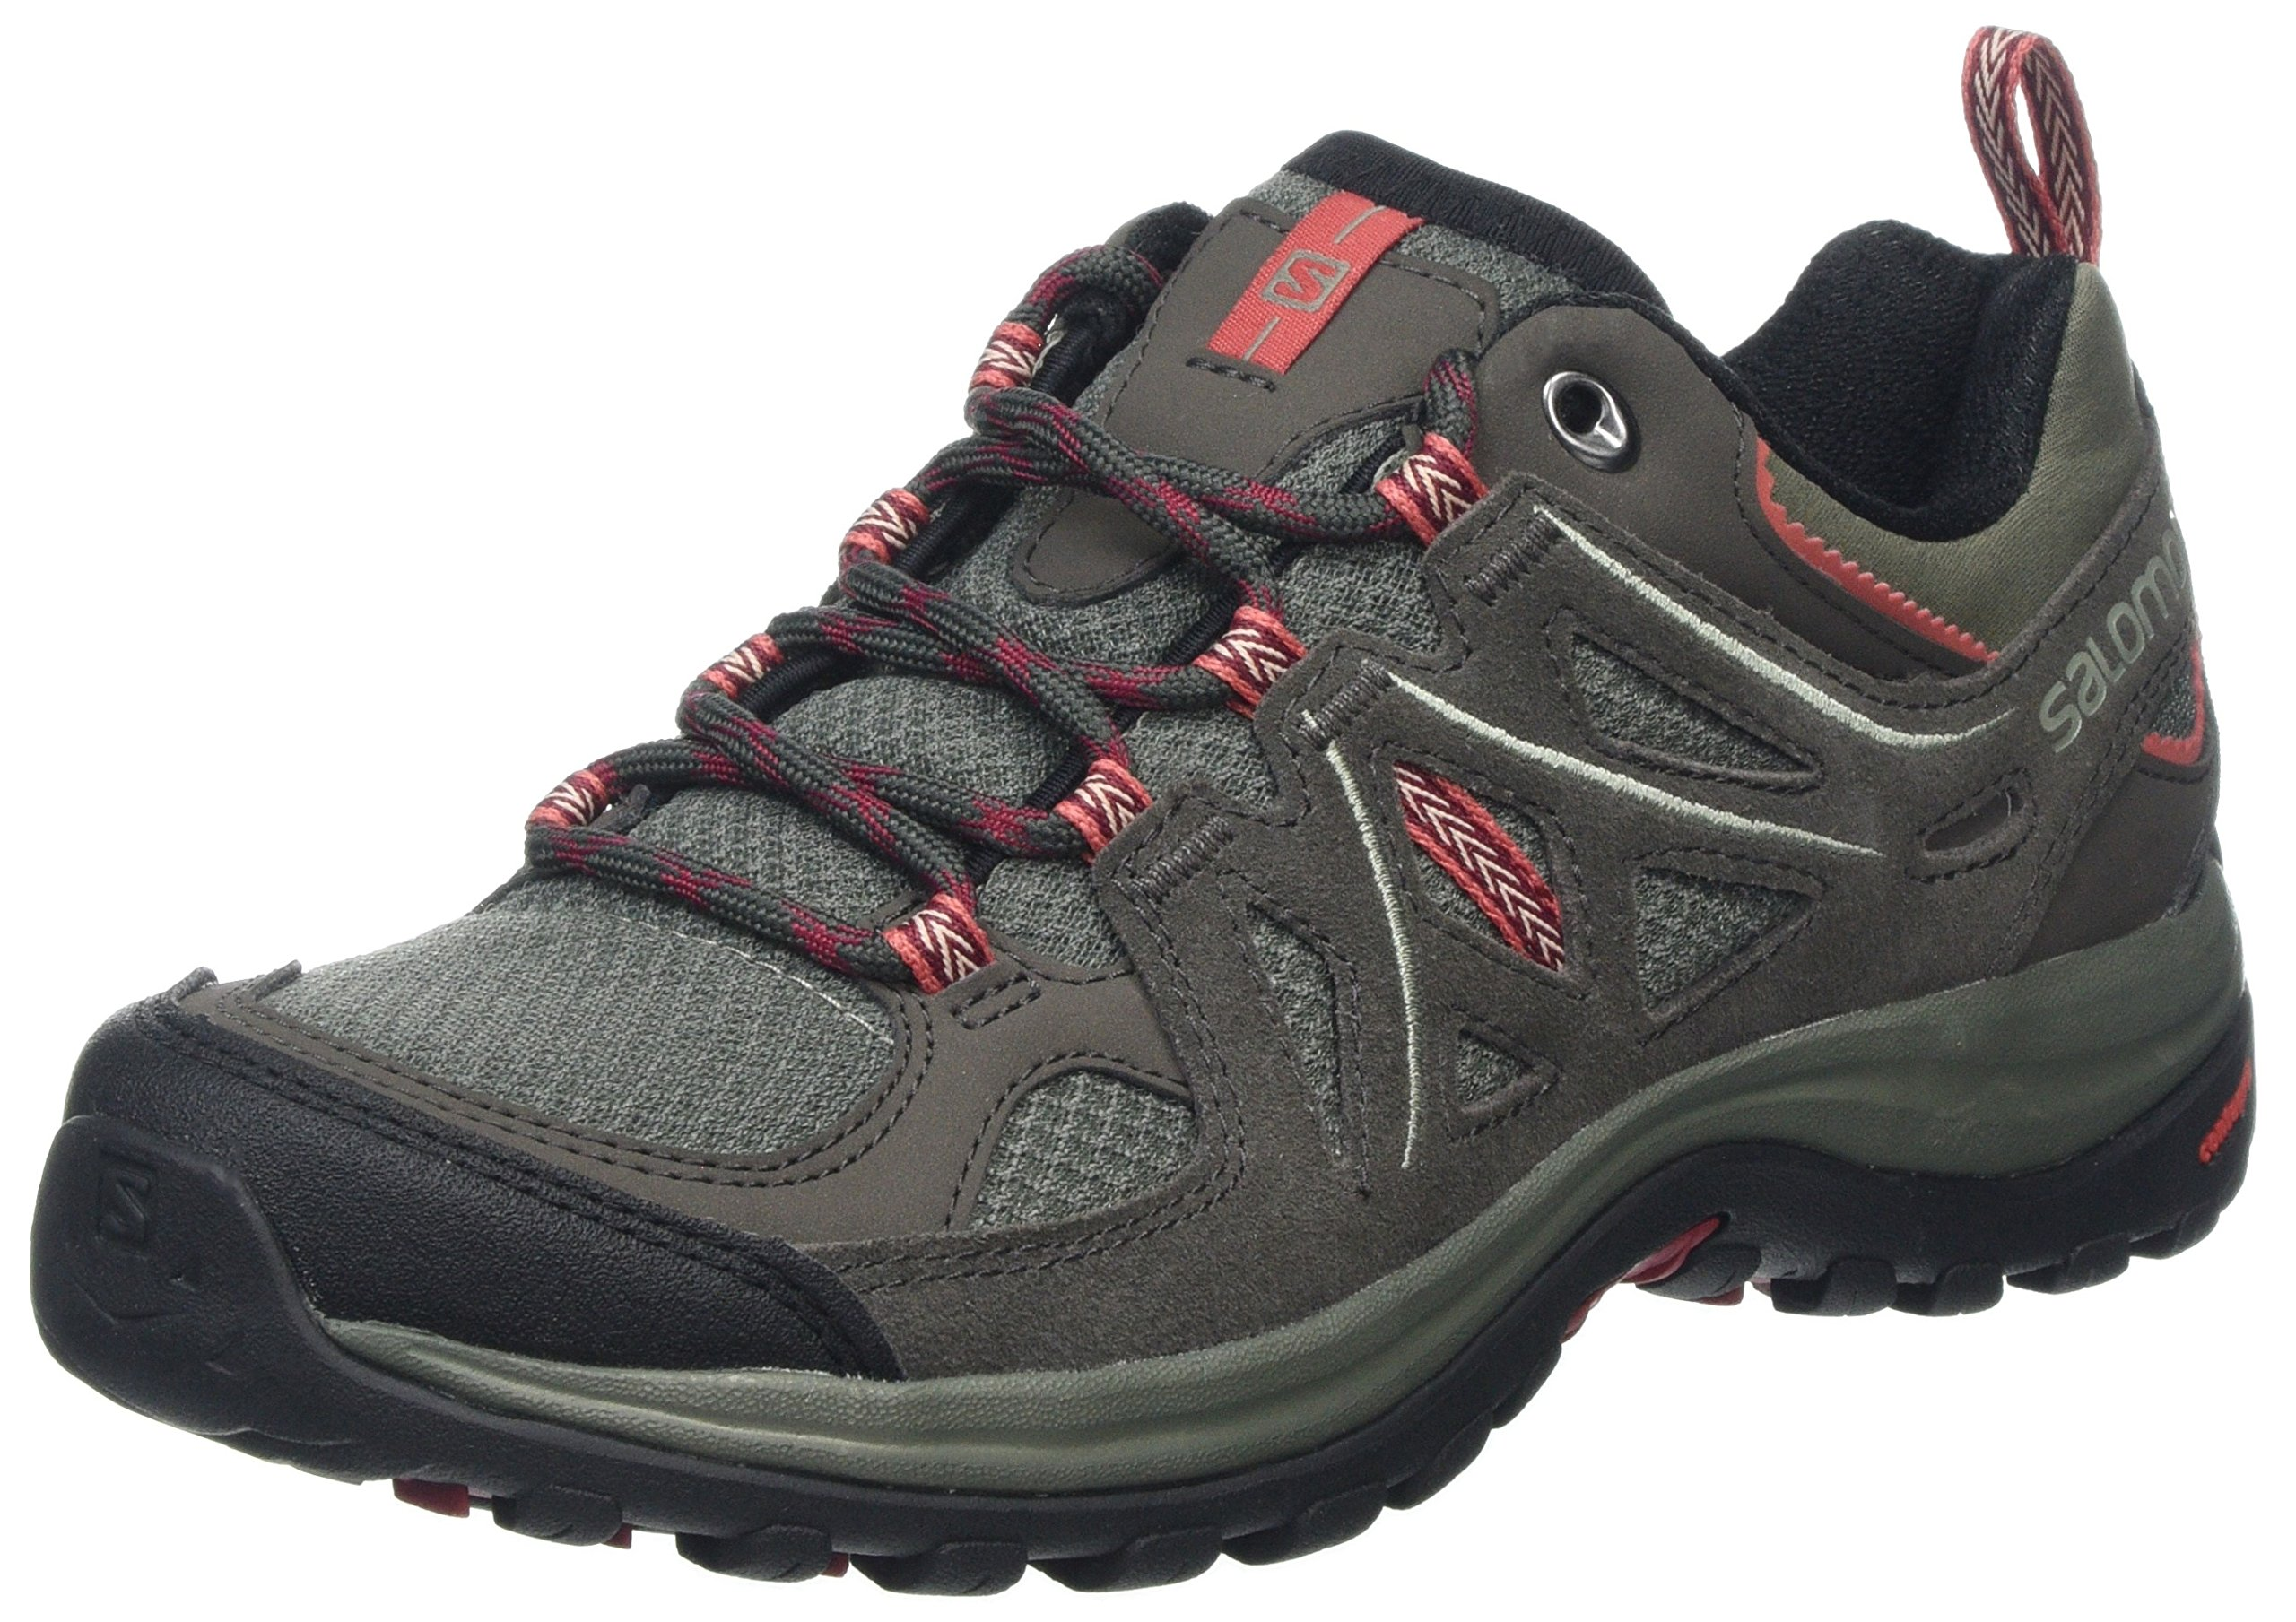 Salomon 2 Rise Ellipse Aero Shoes Women's W Low Hiking qSzGUjMVLp